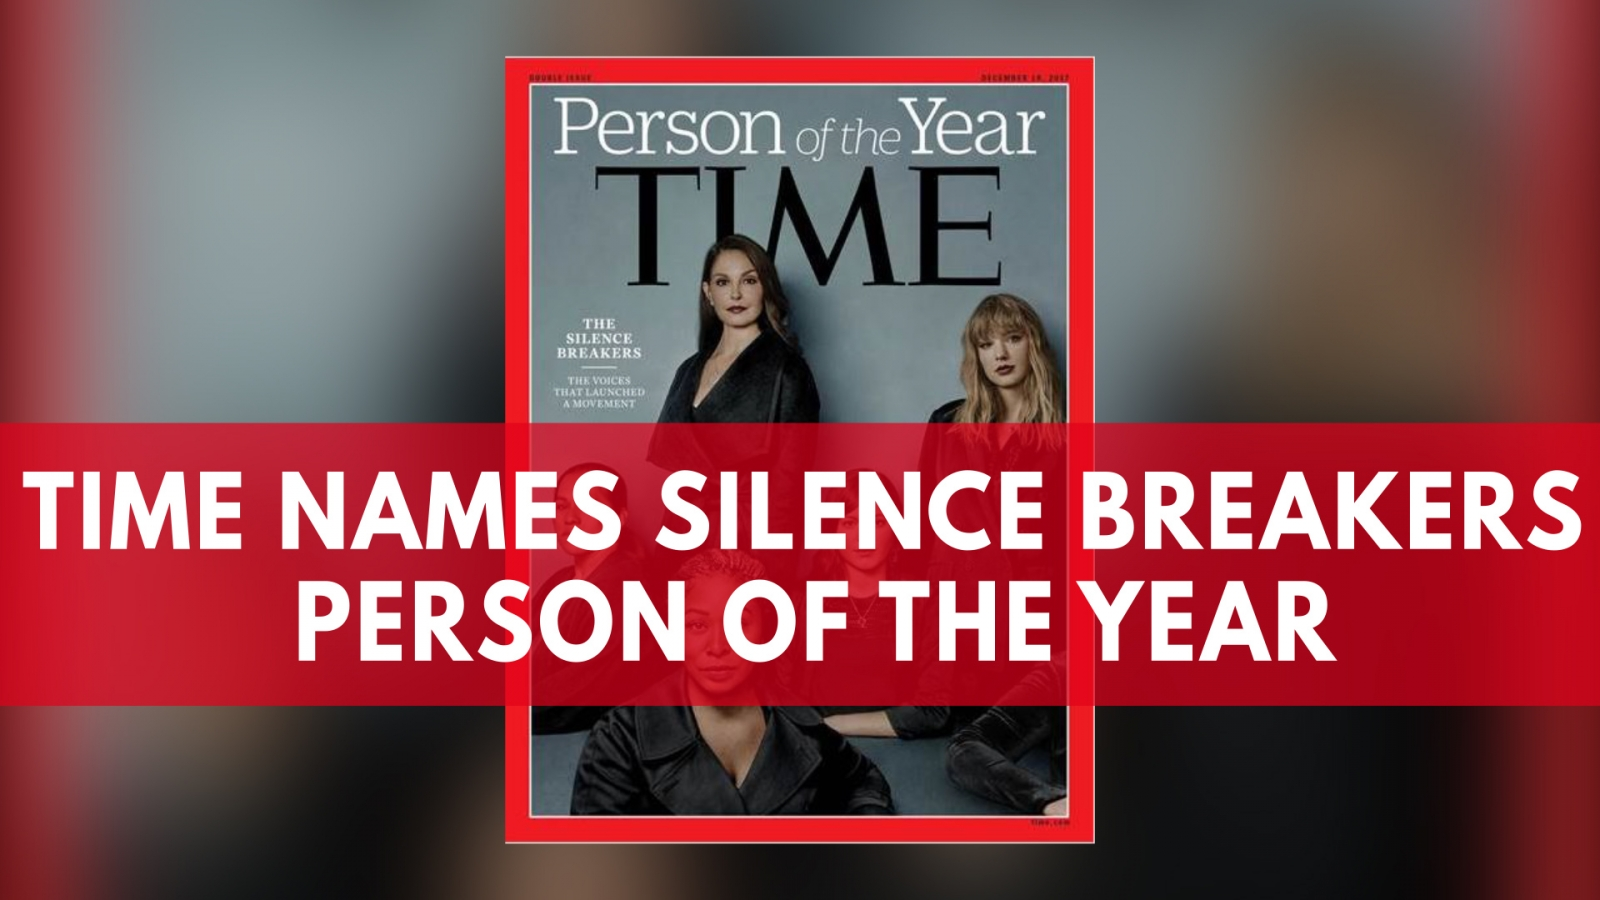 Time magazine names 'Silence Beakers' Person of the Year